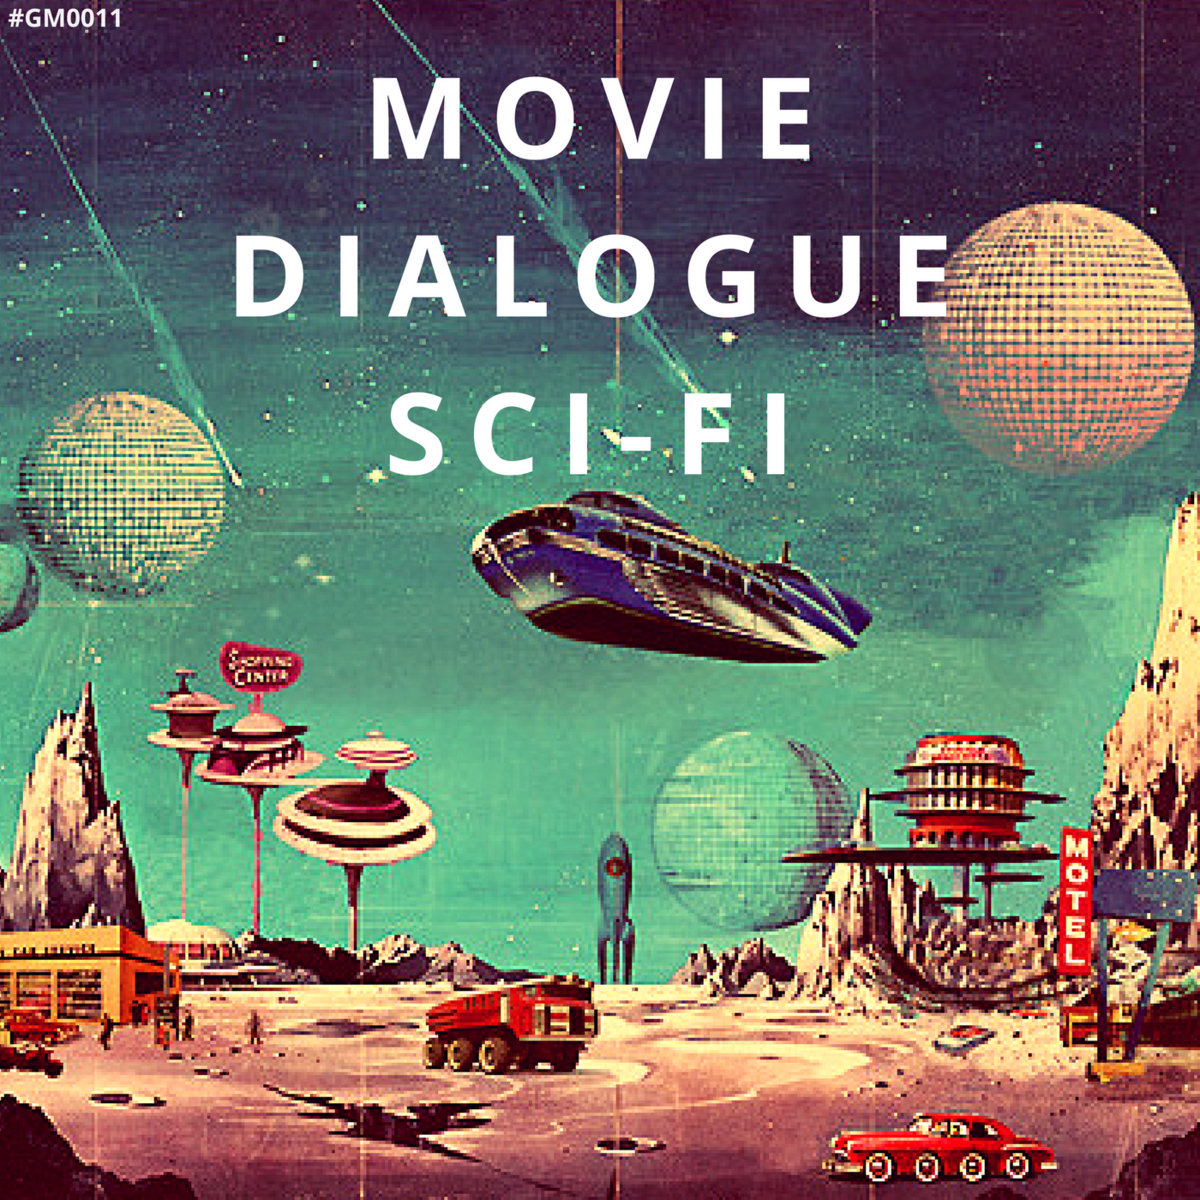 Sample Pack Movie Dialogue - Sci-Fi #GM0011 (140 Spoken Samples